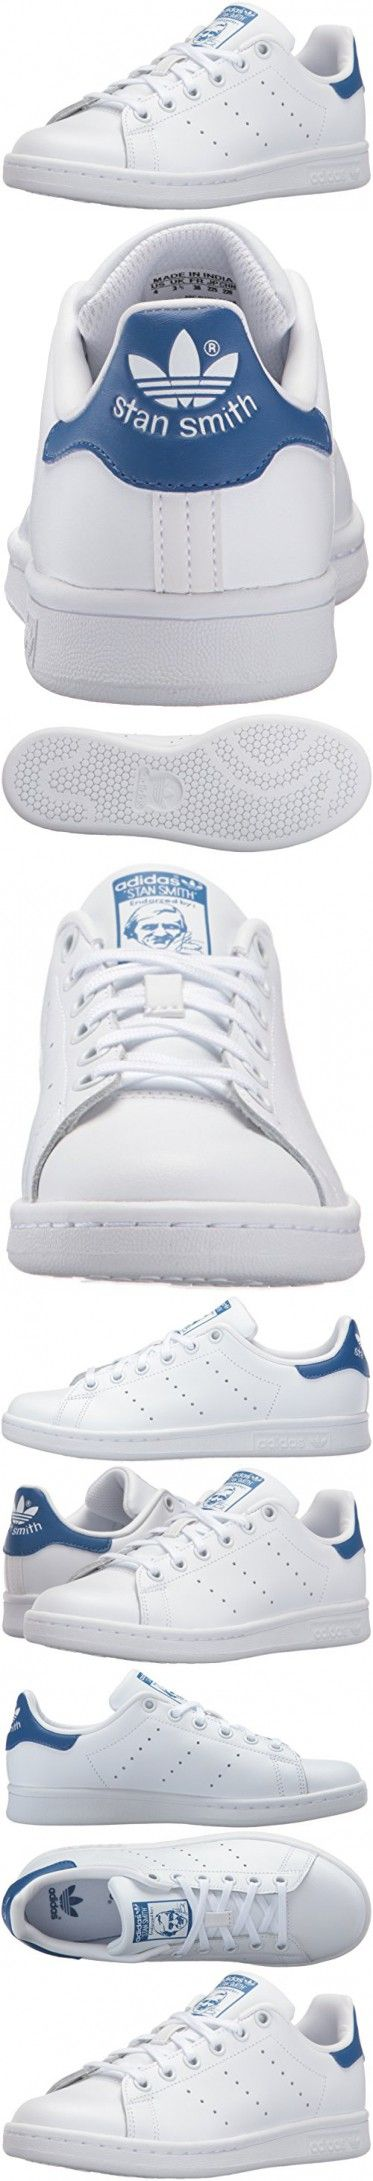 Adidas Originals Boys\u0027 Stan Smith J Skate Shoe, White/White/Equipment Blue